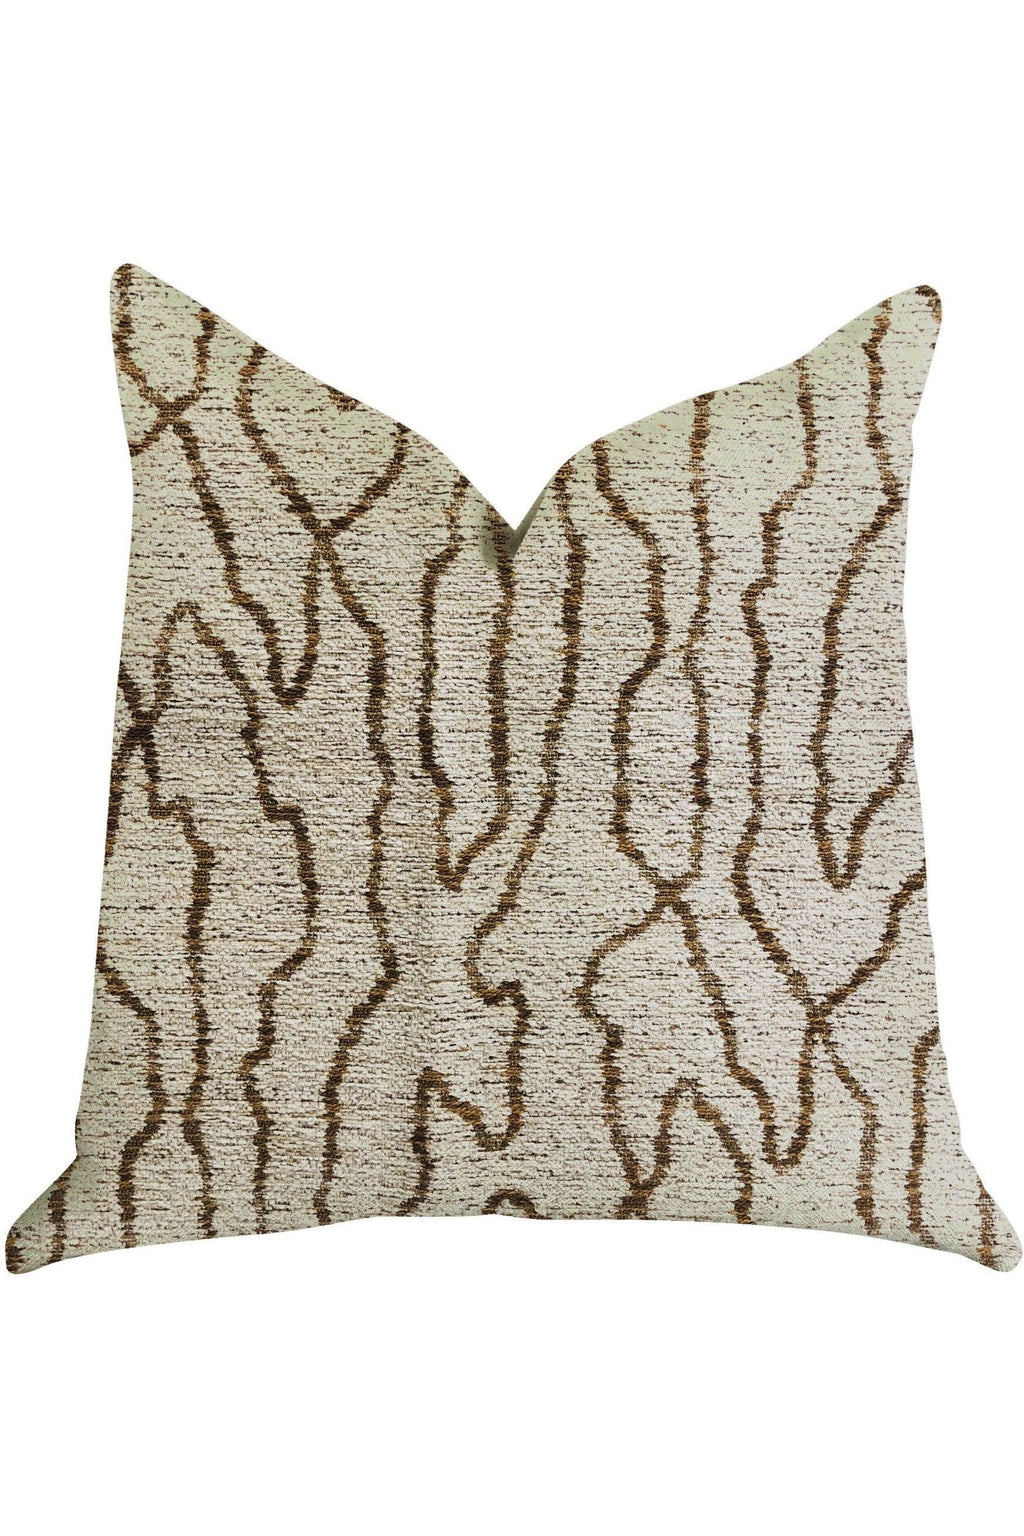 Buttercup Harlow Luxury Throw Pillow - Himelhoch's